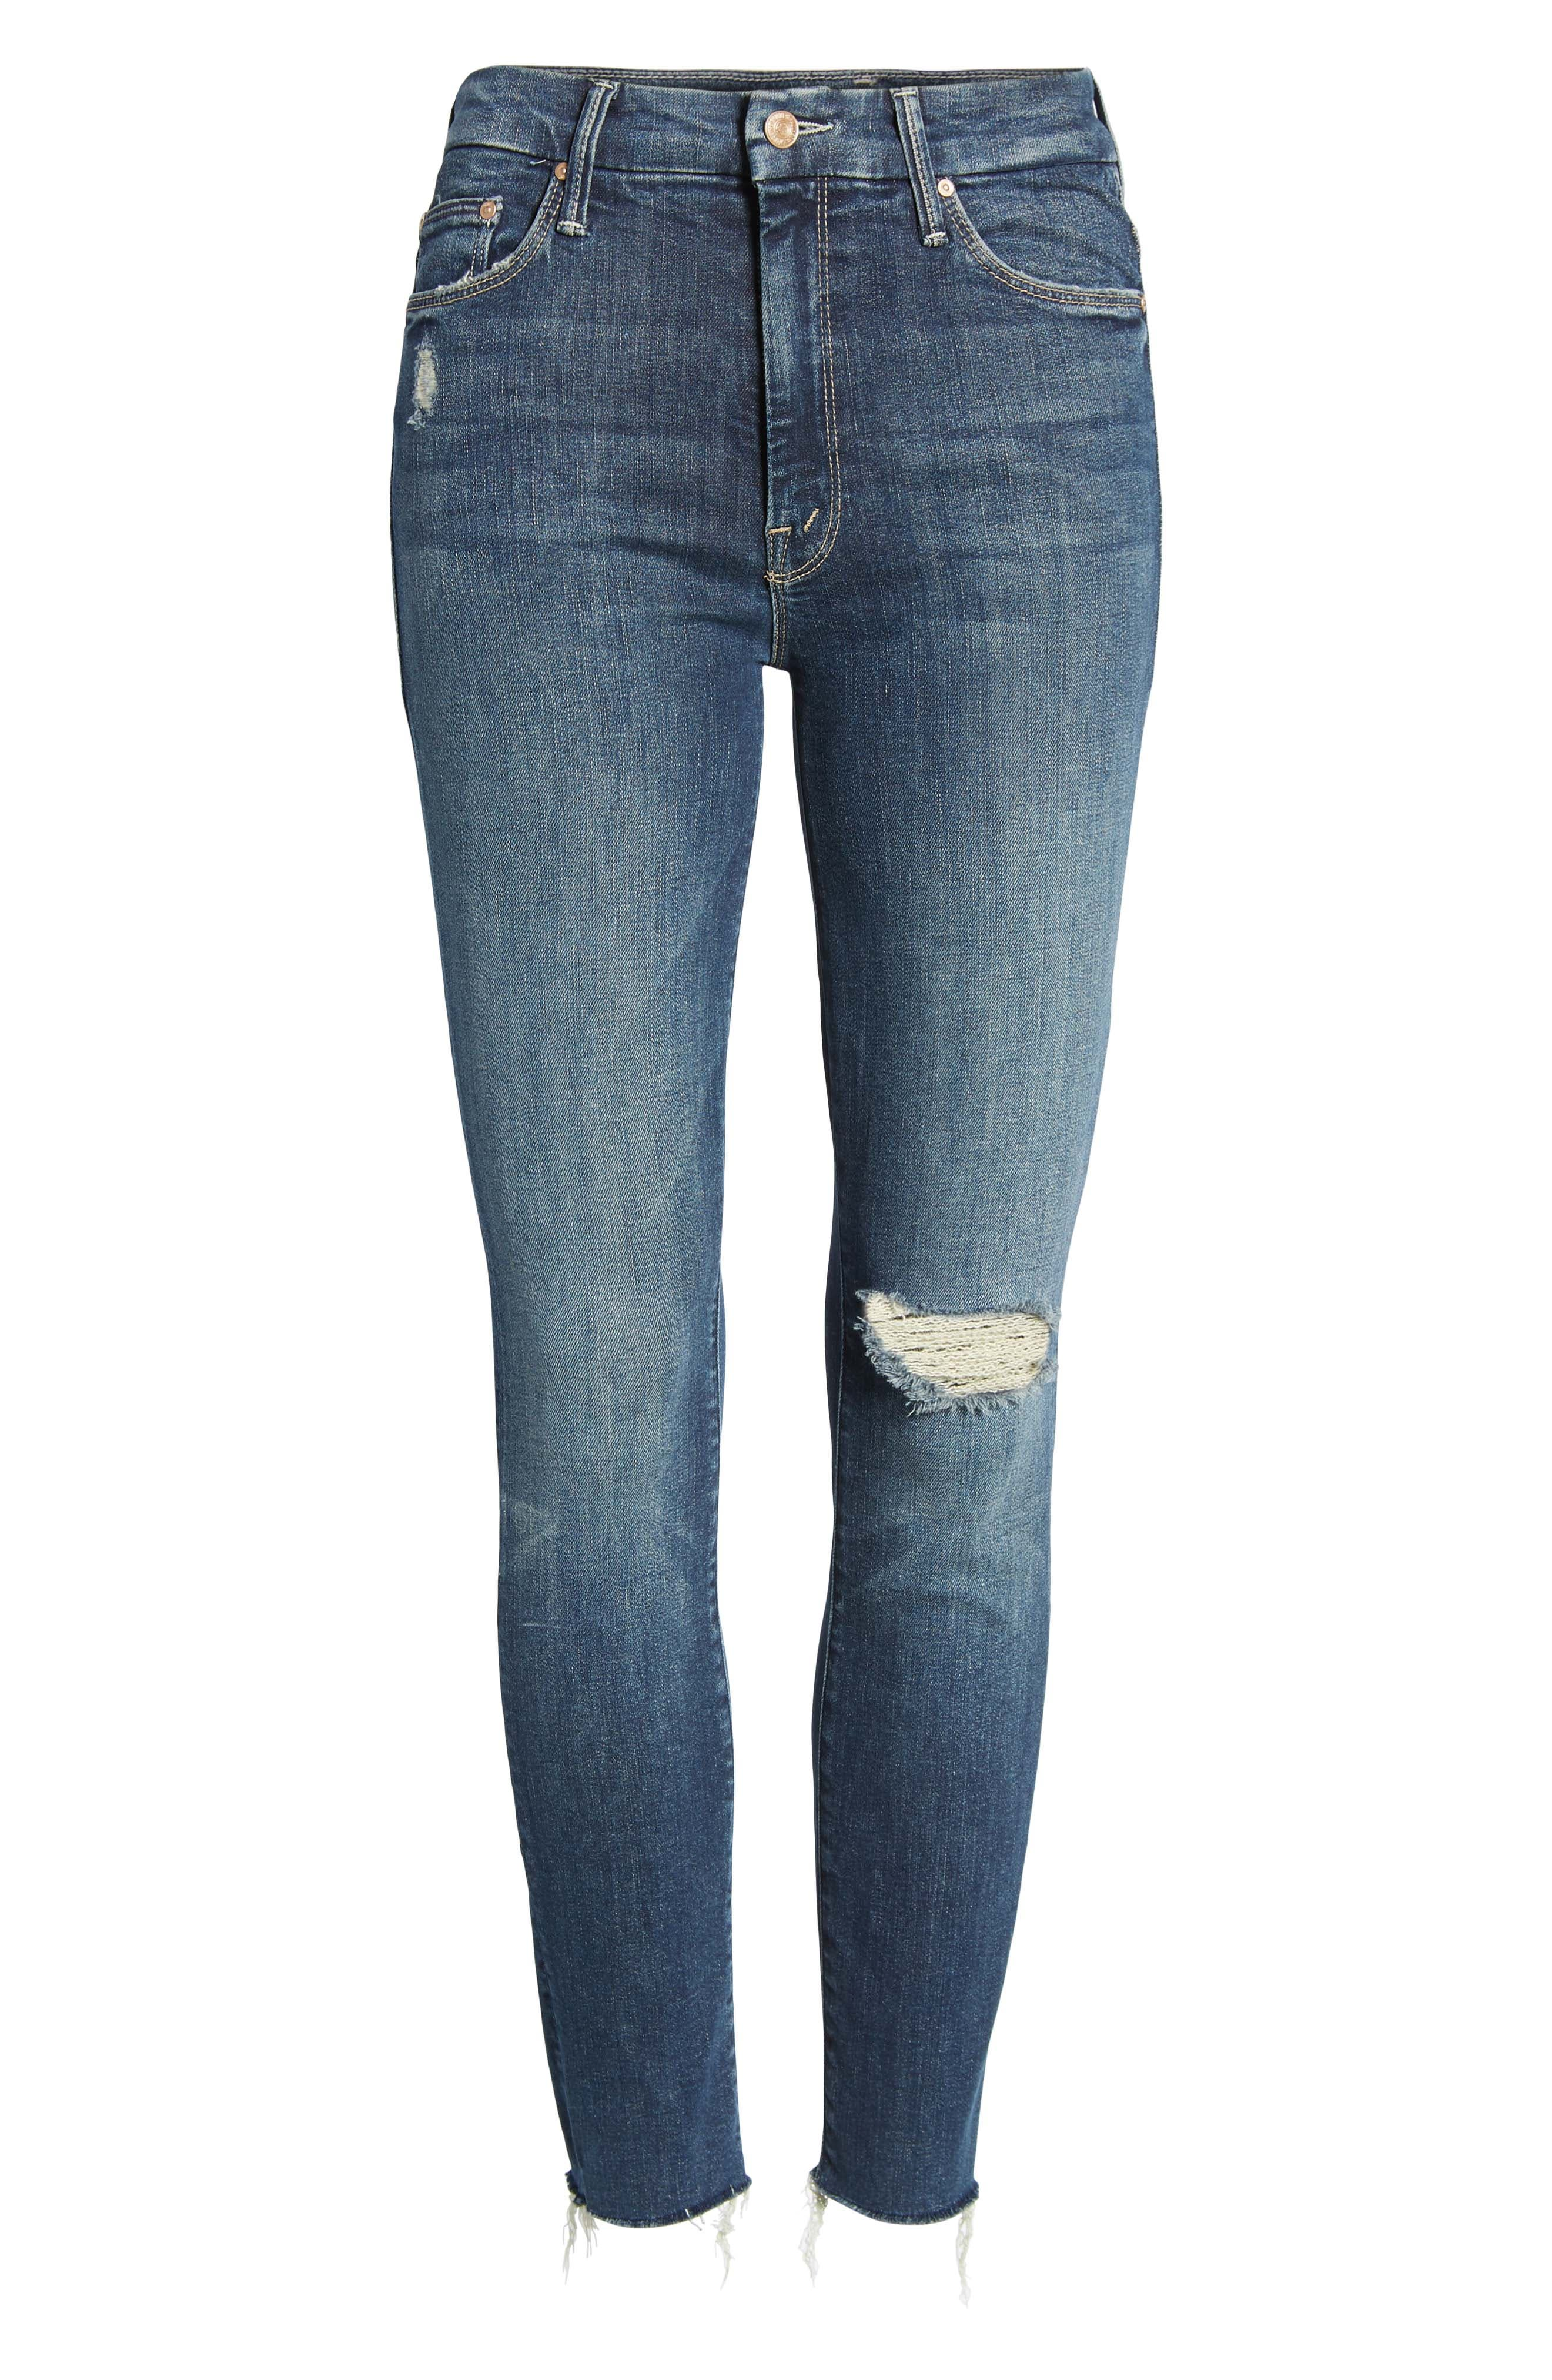 MOTHER, The Looker High Waist Frayed Ankle Skinny Jeans, Alternate thumbnail 7, color, CLOSE TO THE EDGE